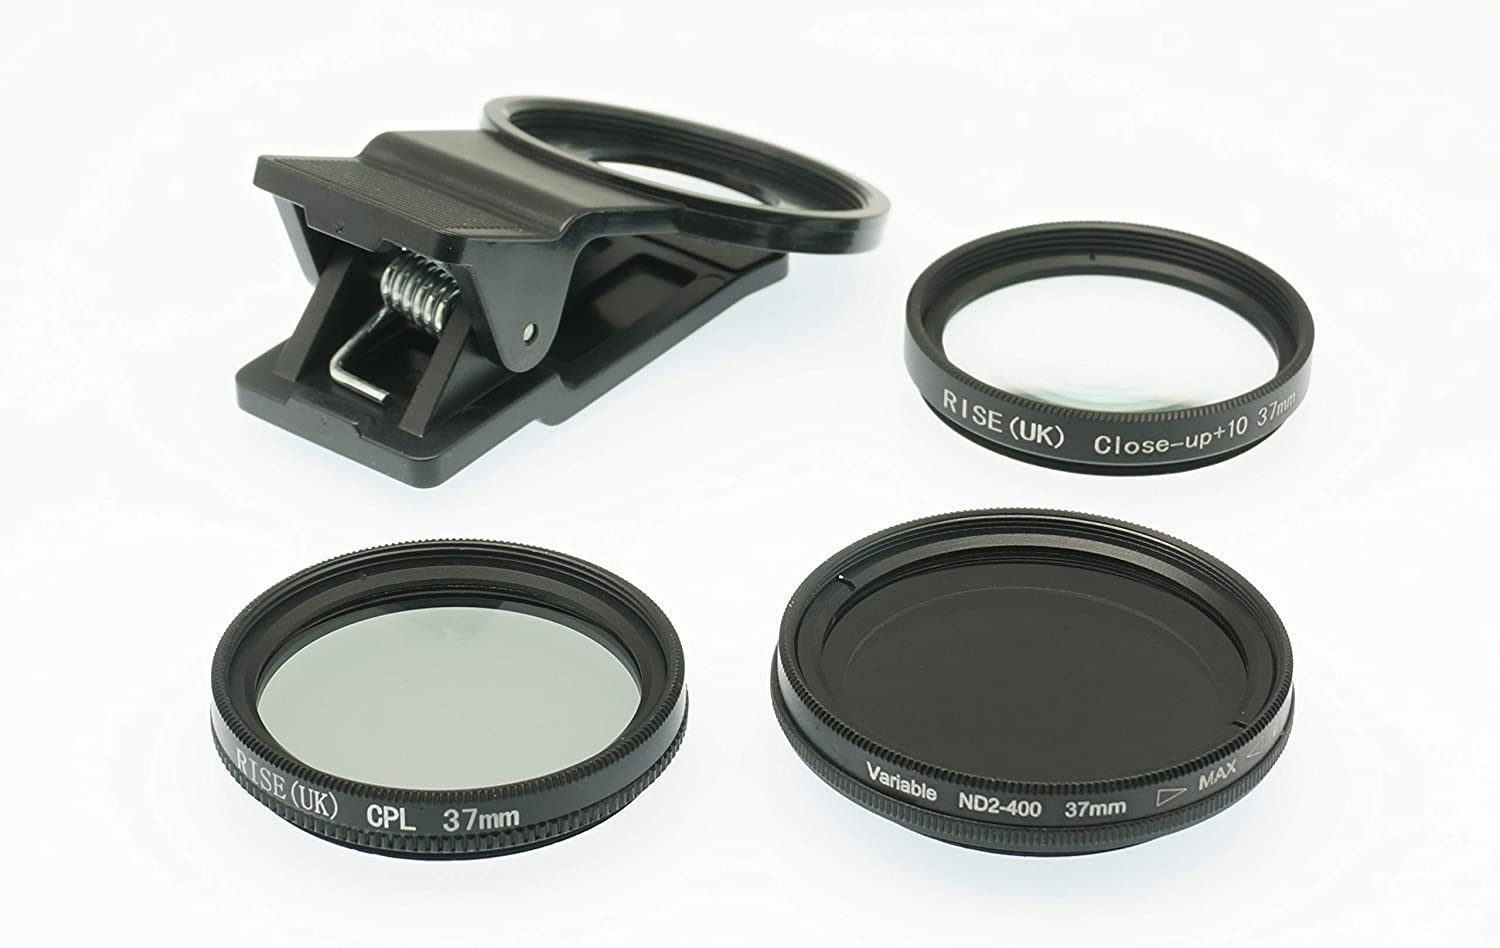 Polarizer Closeup Lens Kit for Samsung Galaxy J7 Max Gadget Place Variable ND Filter